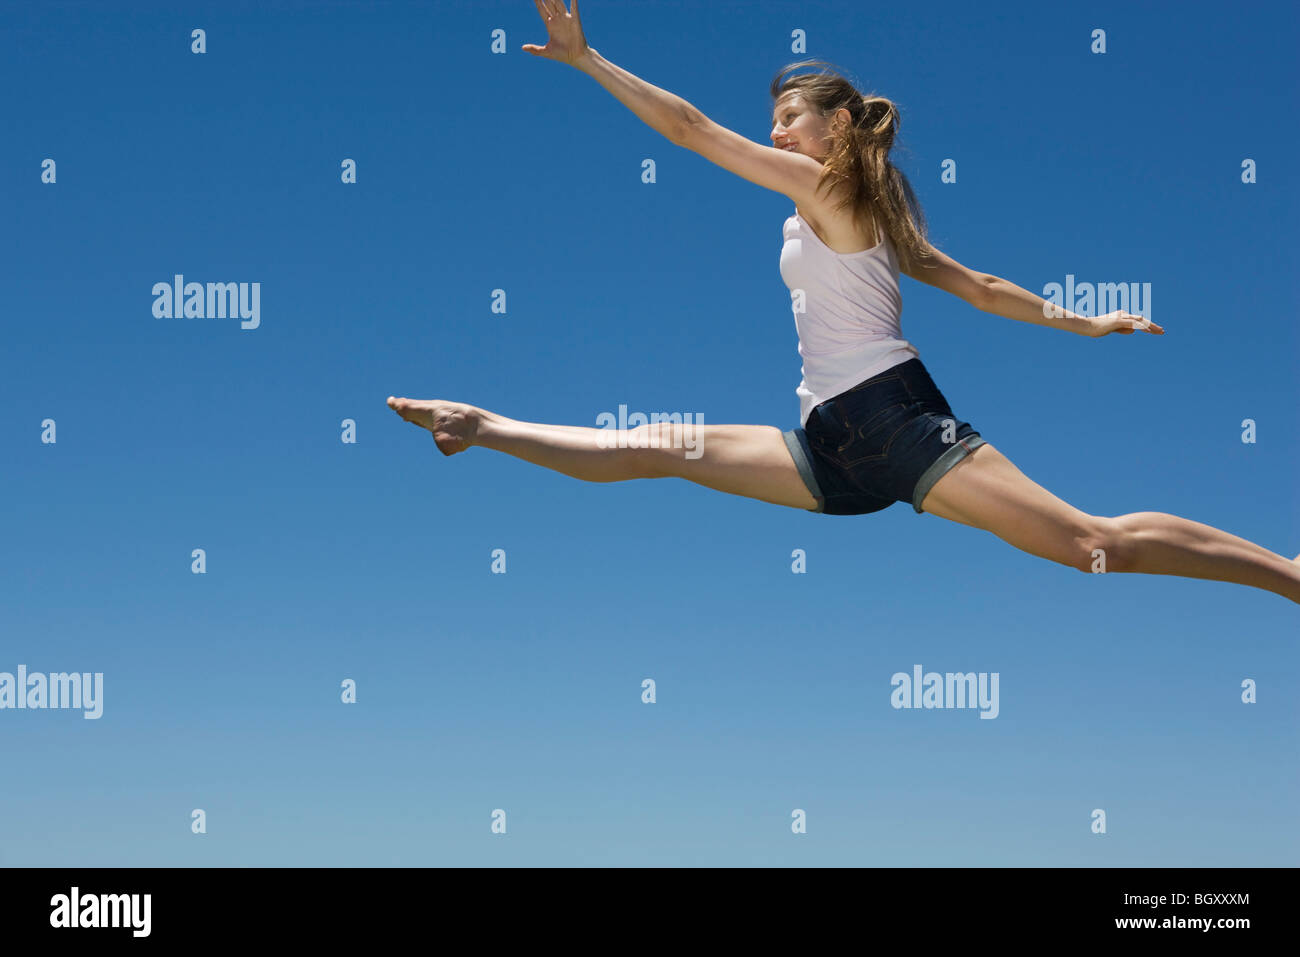 Young woman leaping, midair Stock Photo